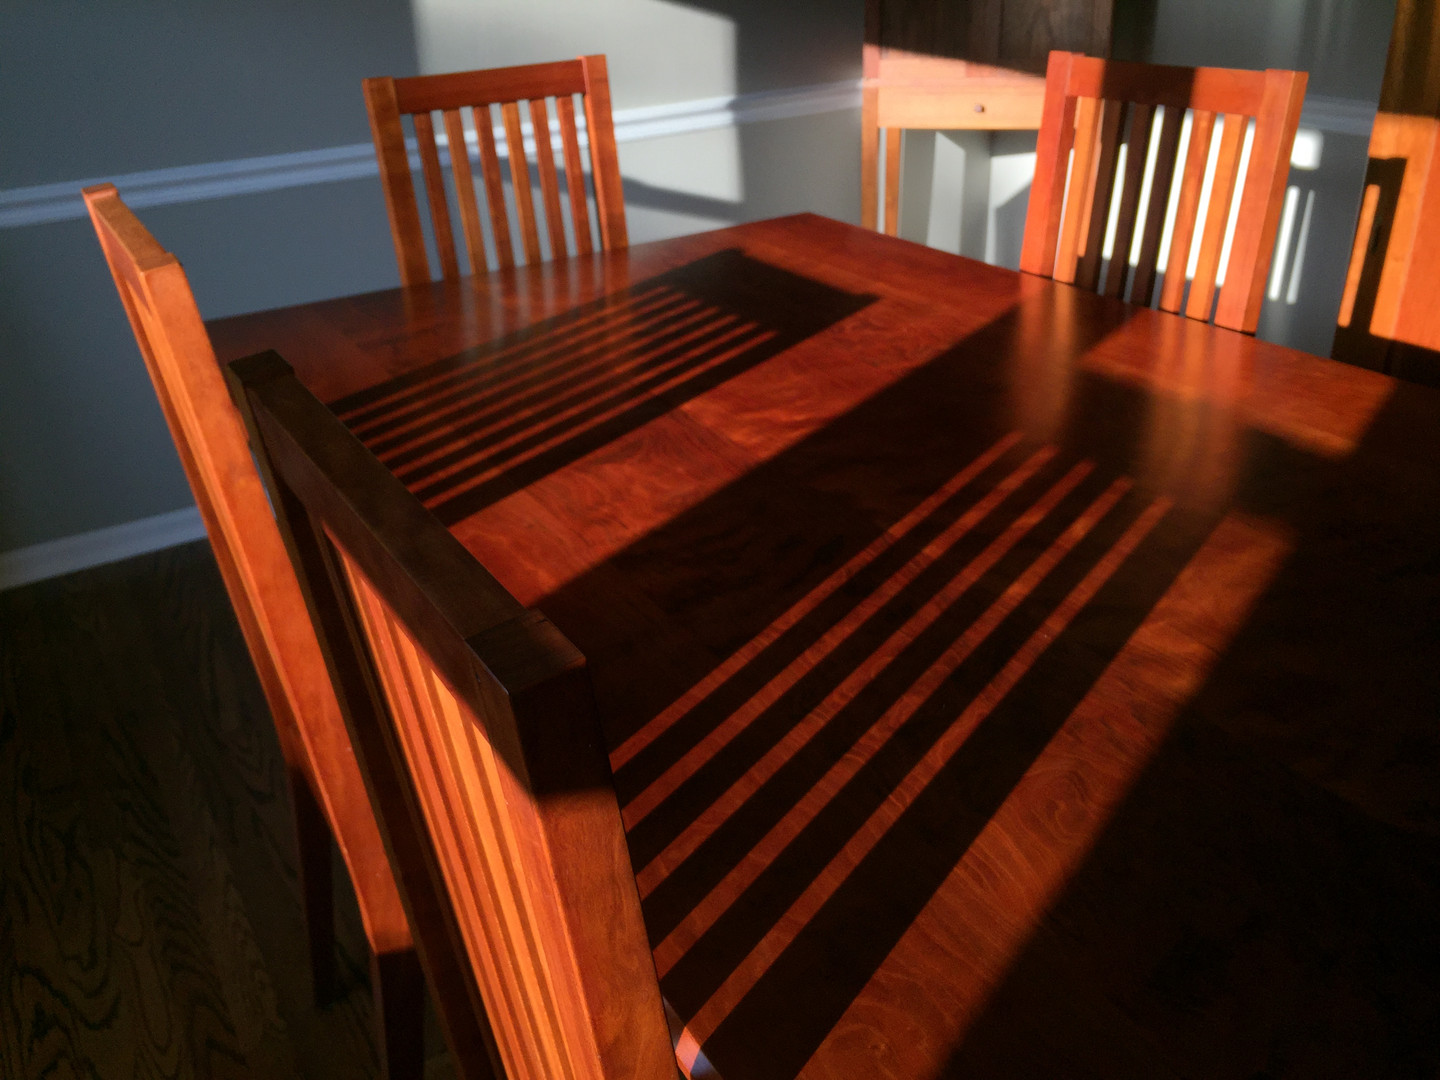 Curly Cherry Dining Table and Chairs